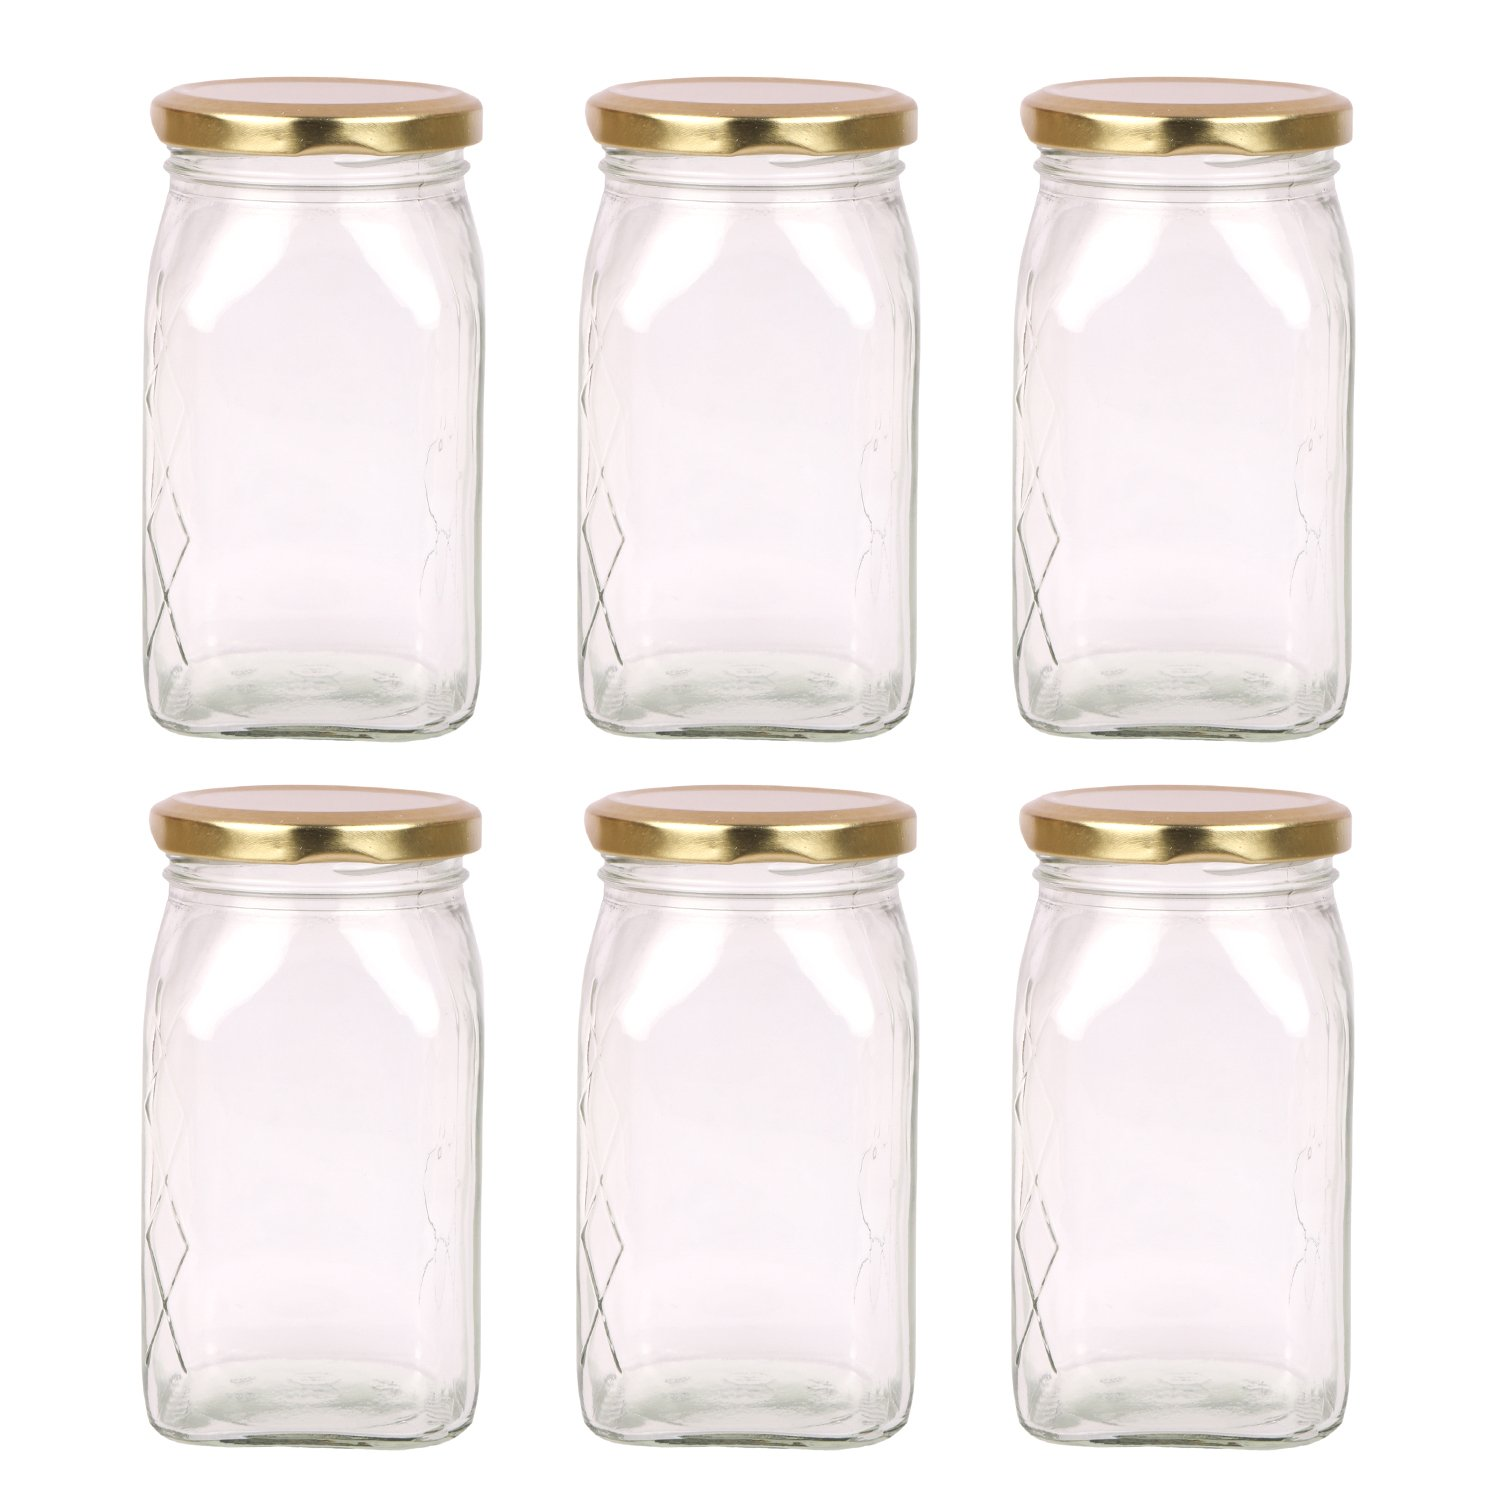 The Retailer House Glass Jar 250 Gram Capacity With Metal Gold Color Rust Proof Air Tight Cap,(Set Of 6 Pcs )